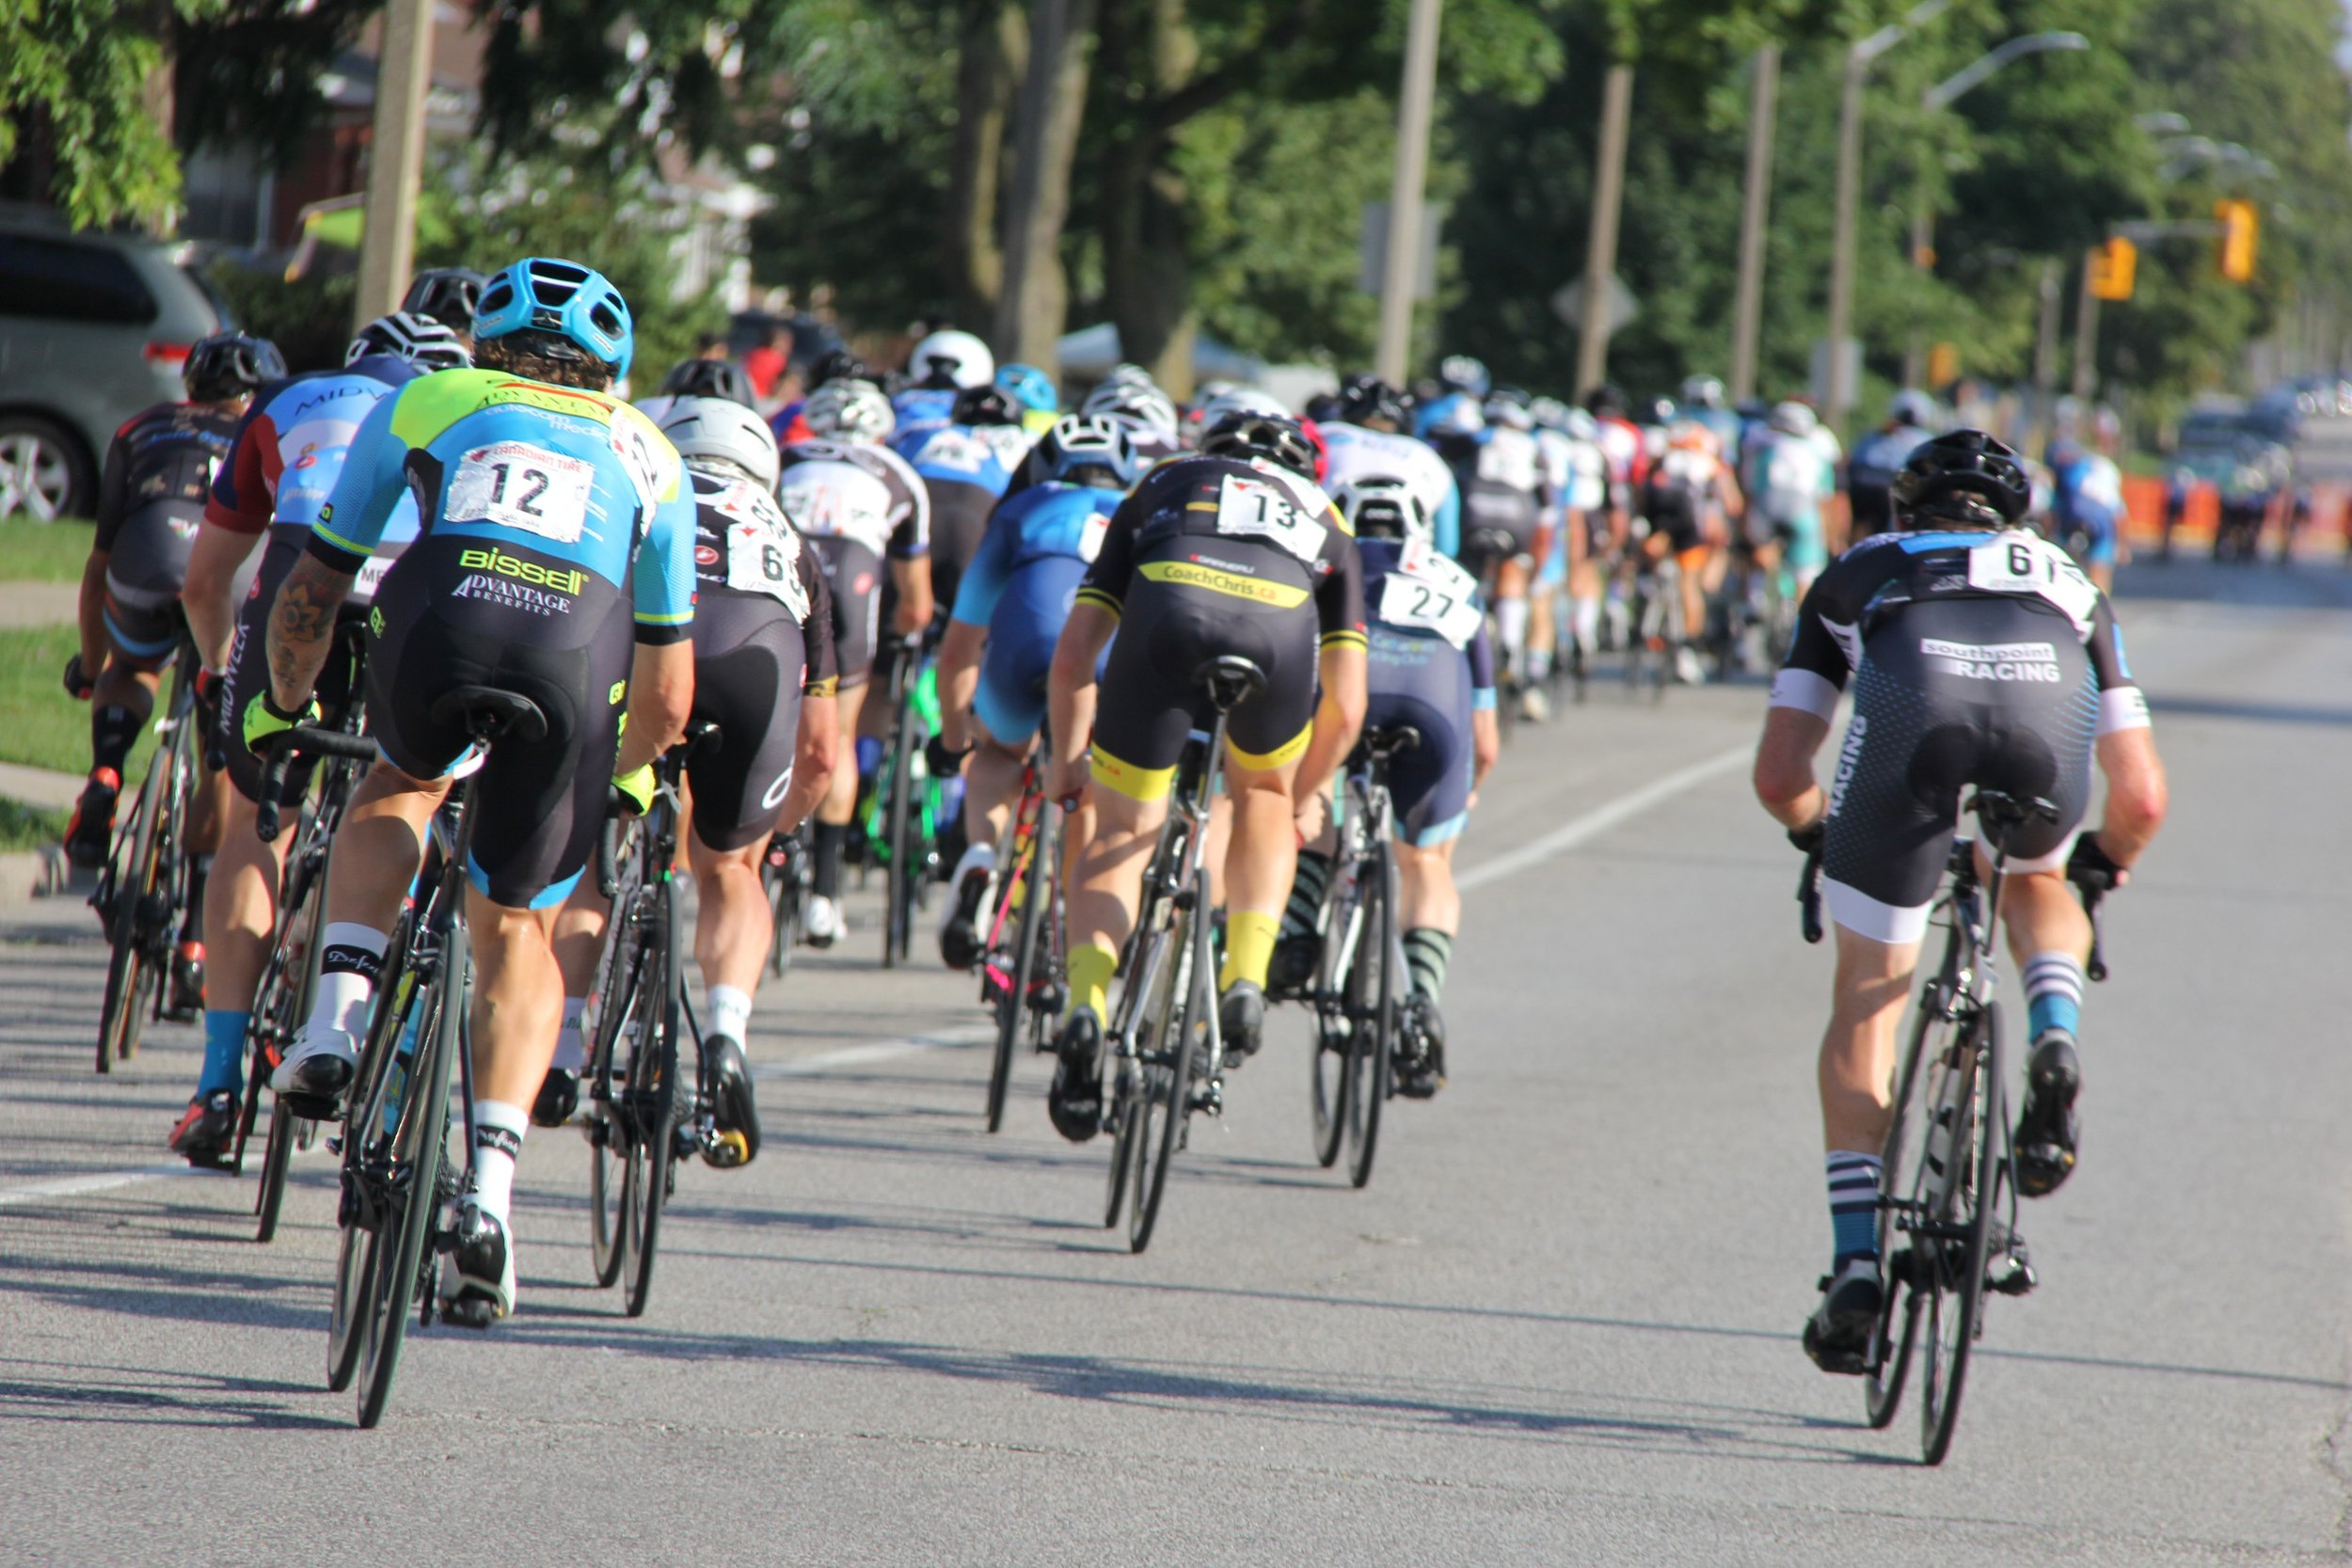 Tour Di Via Italia (Provincials - Crit) - 37/60